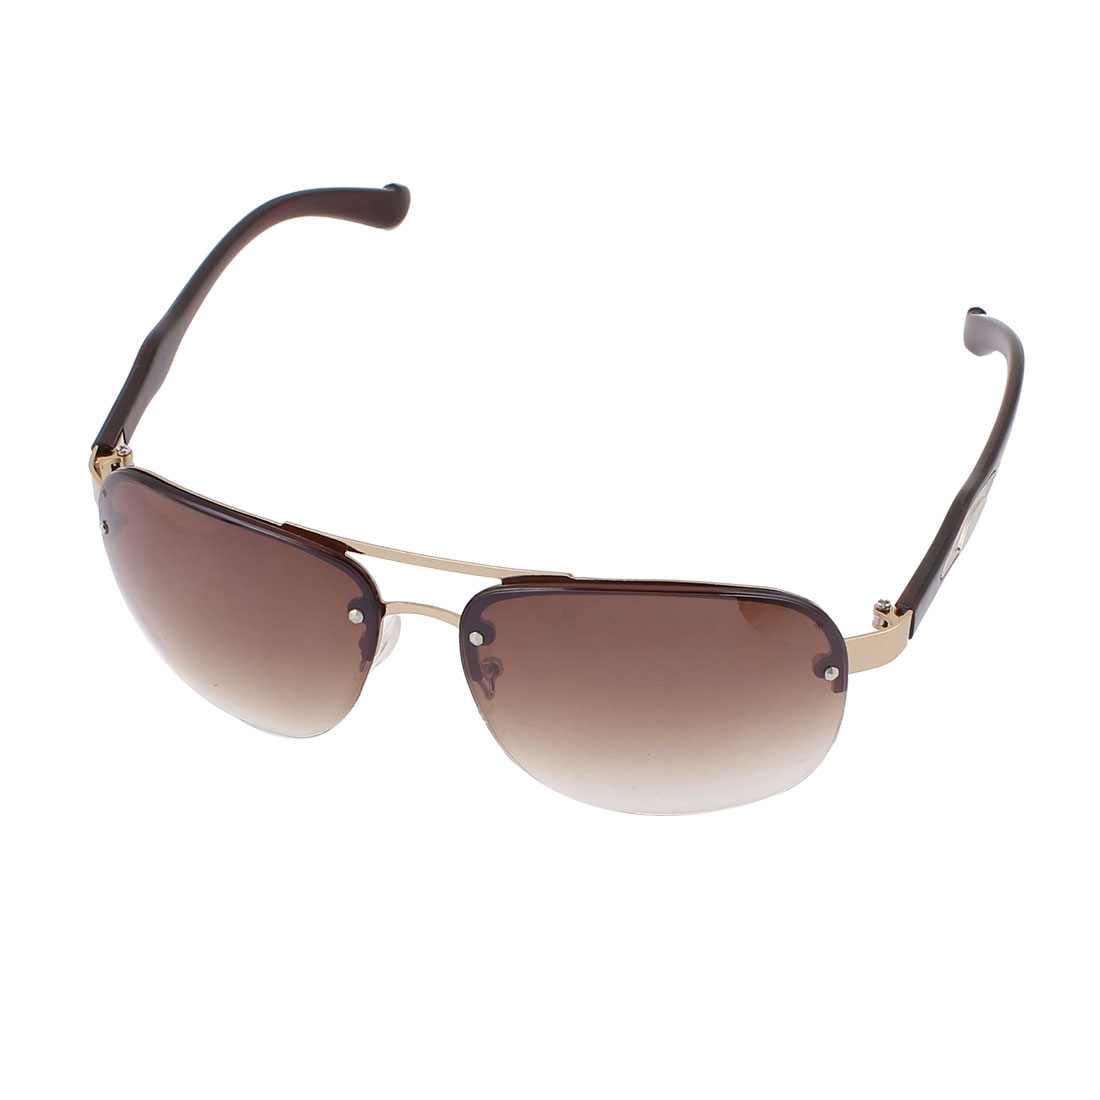 Retro Style Half Rim Sunglasses Outdoor Eyekeeper Eyewear Black